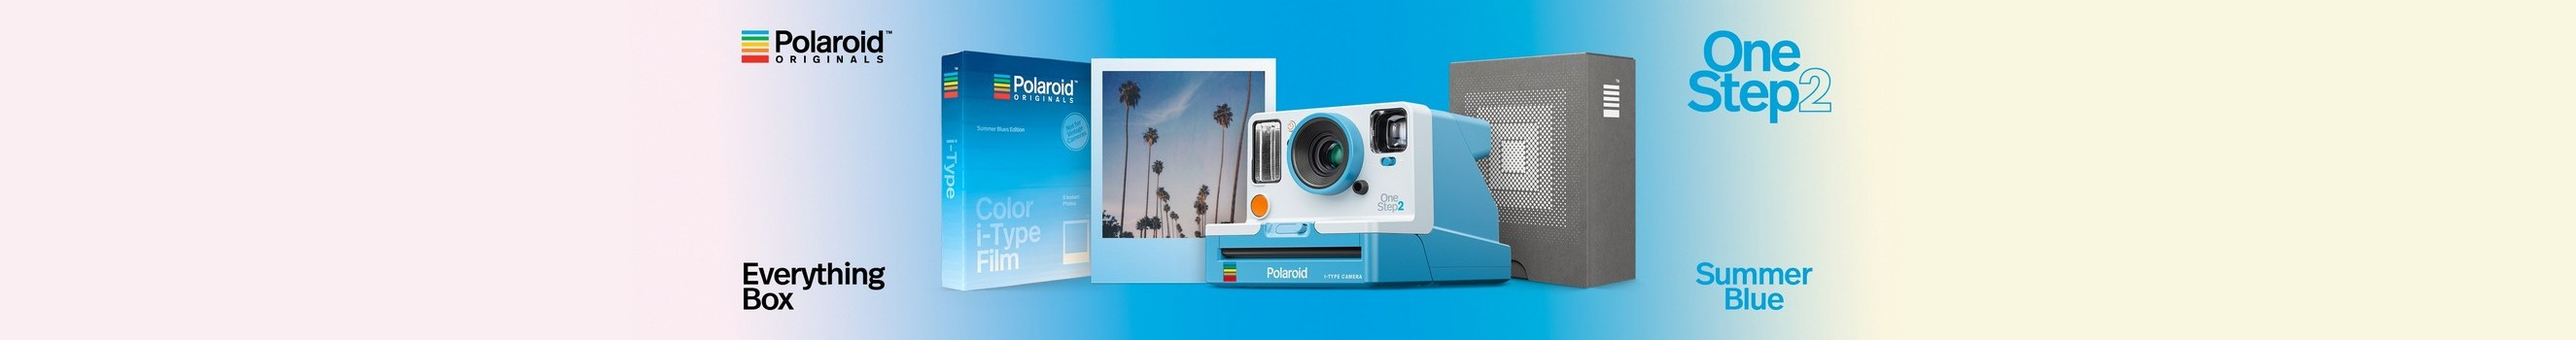 Polaroid Originals One Step 2 Summer Blue Everything Box